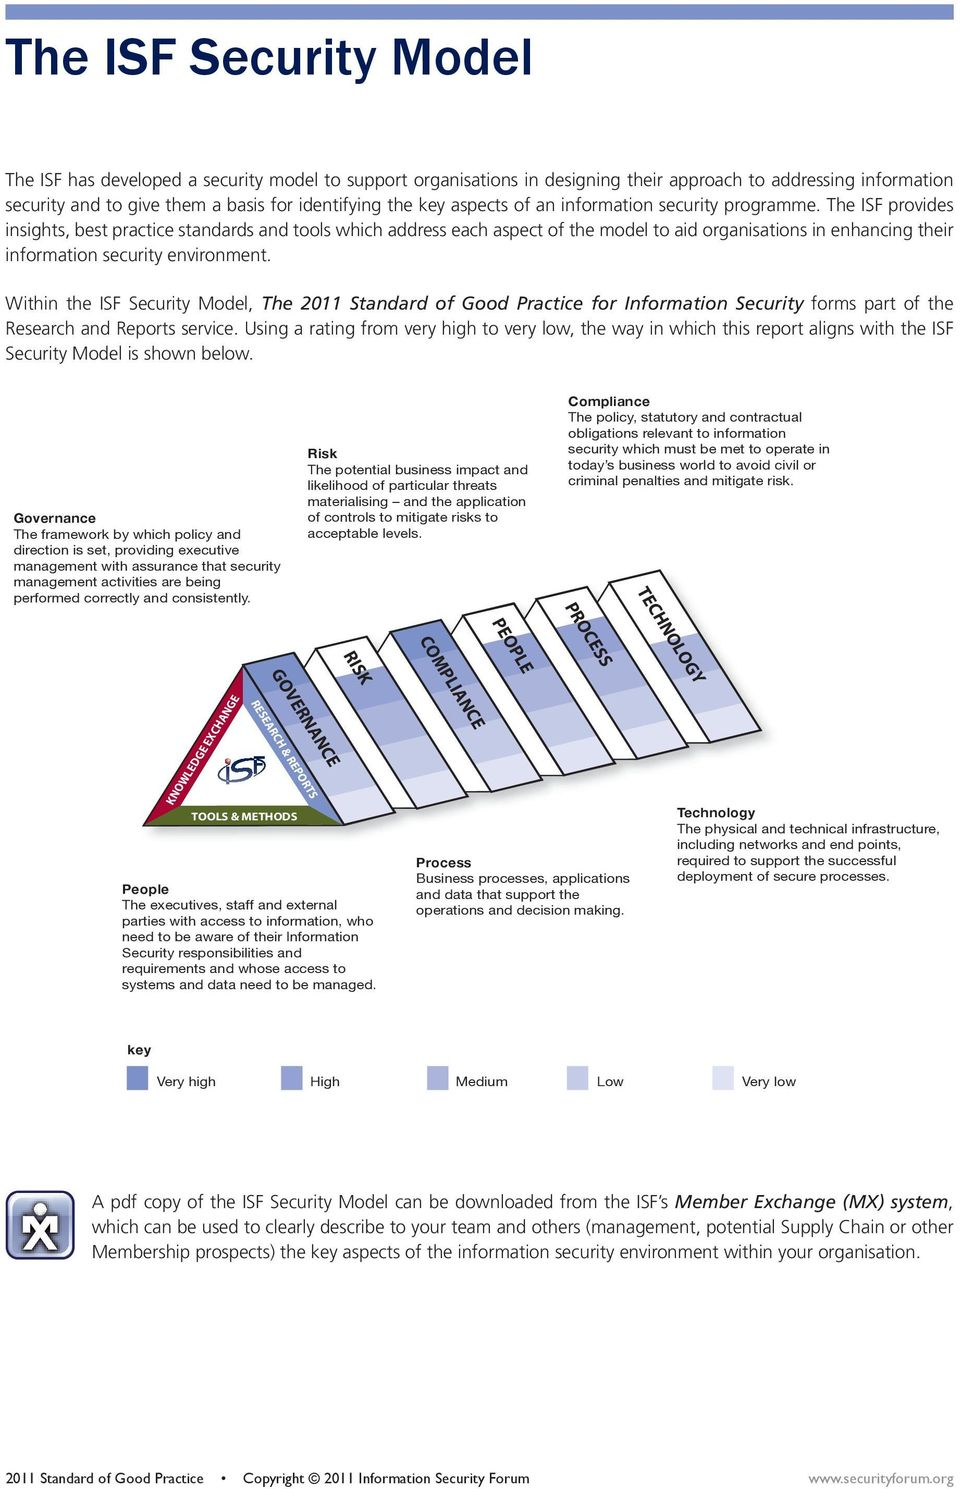 The 2011 Standard of Good Practice for Information Security